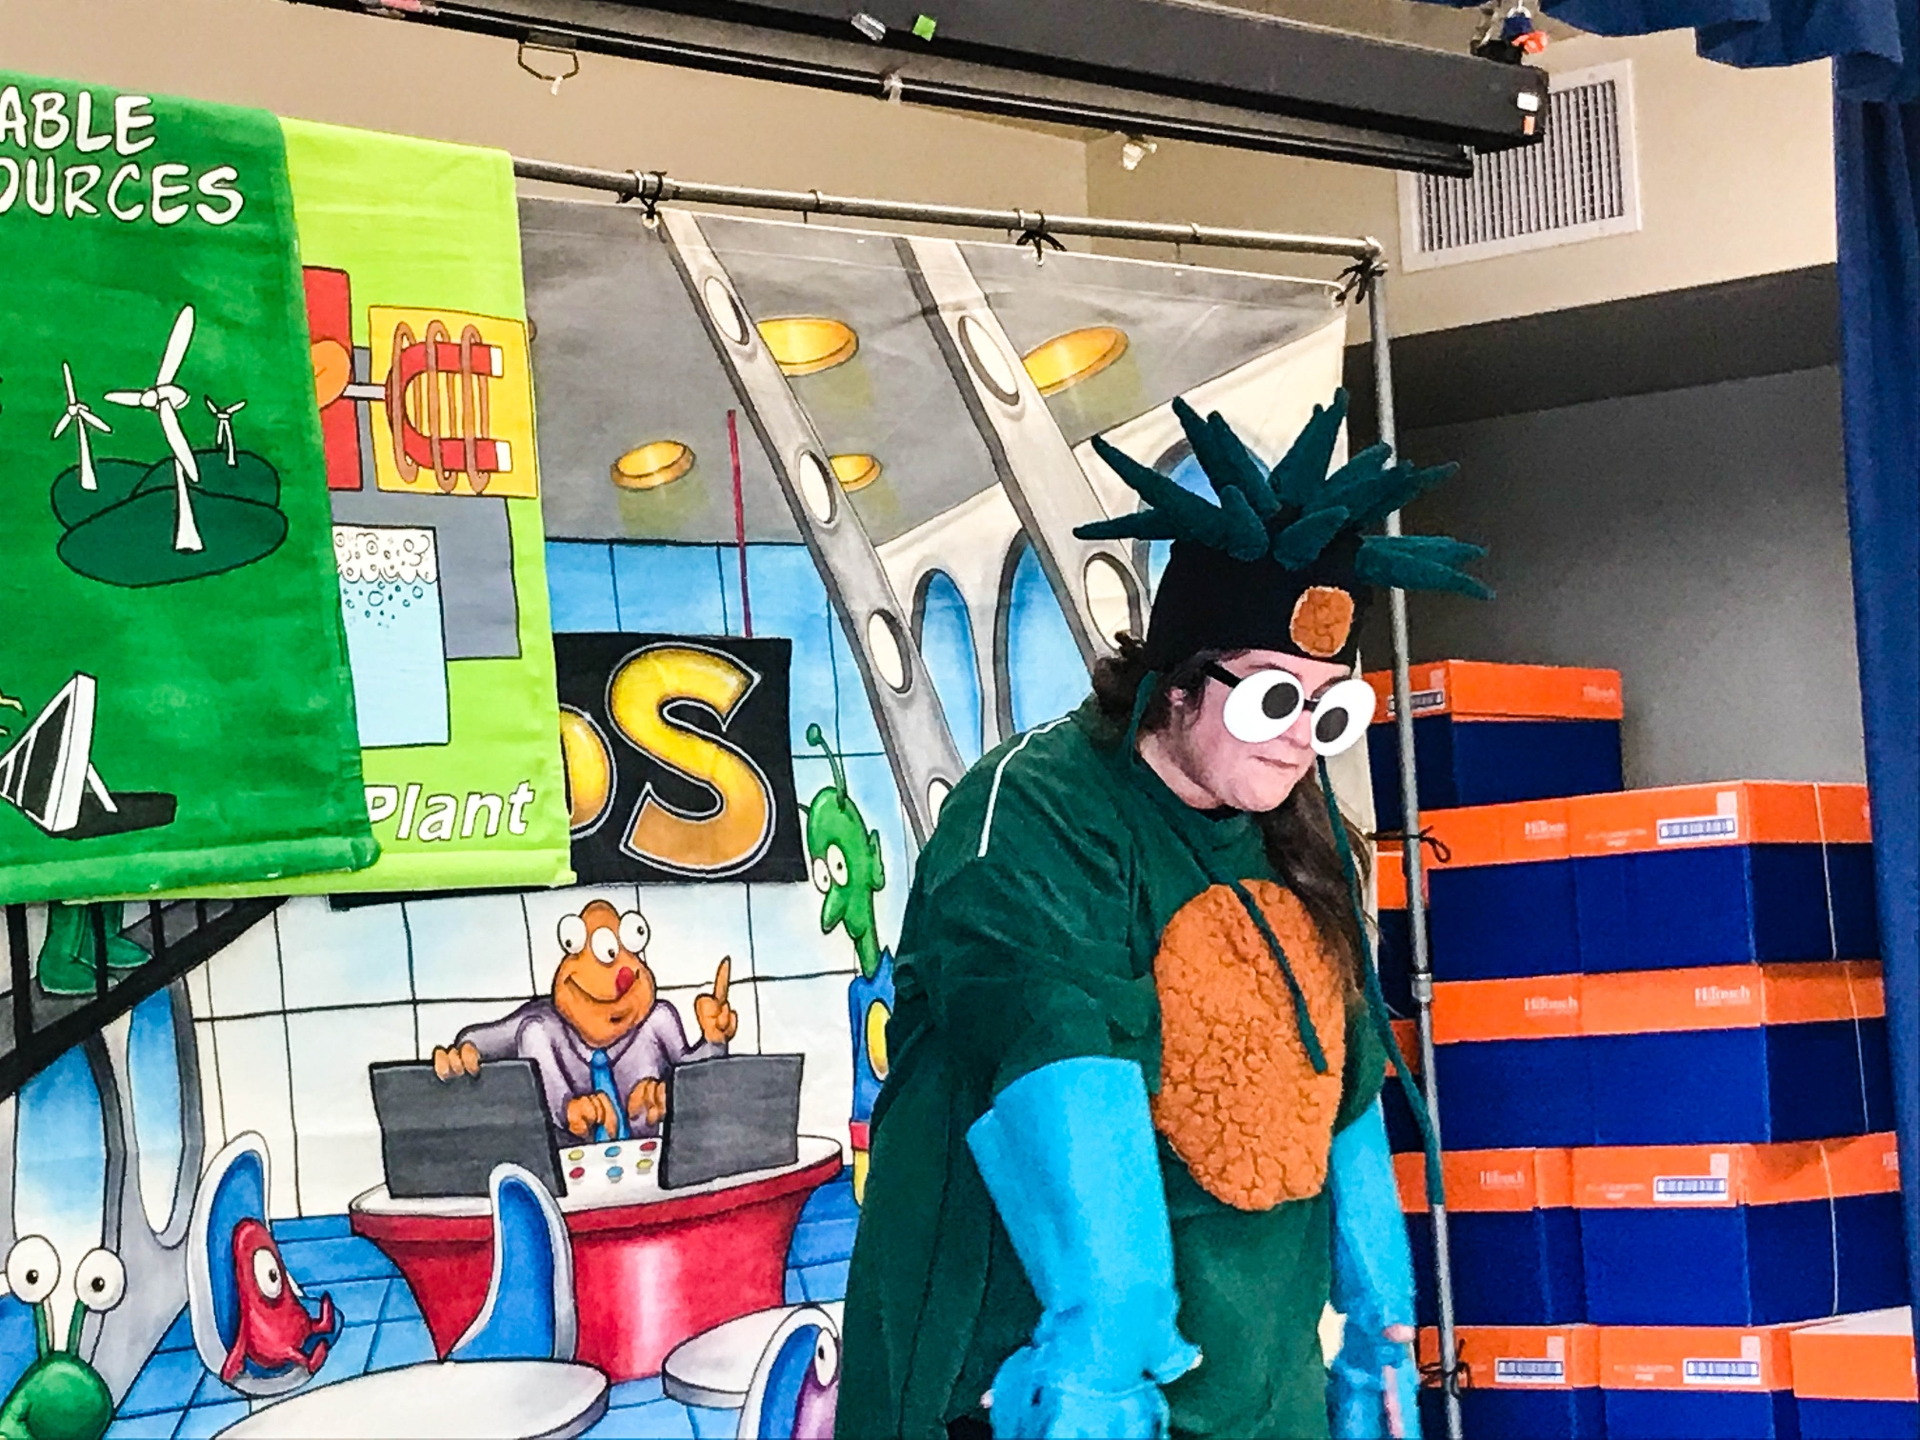 A colorful cast of characters used comical dialogue, costume changes and animated voices to engage students which made learning fun and entertaining.